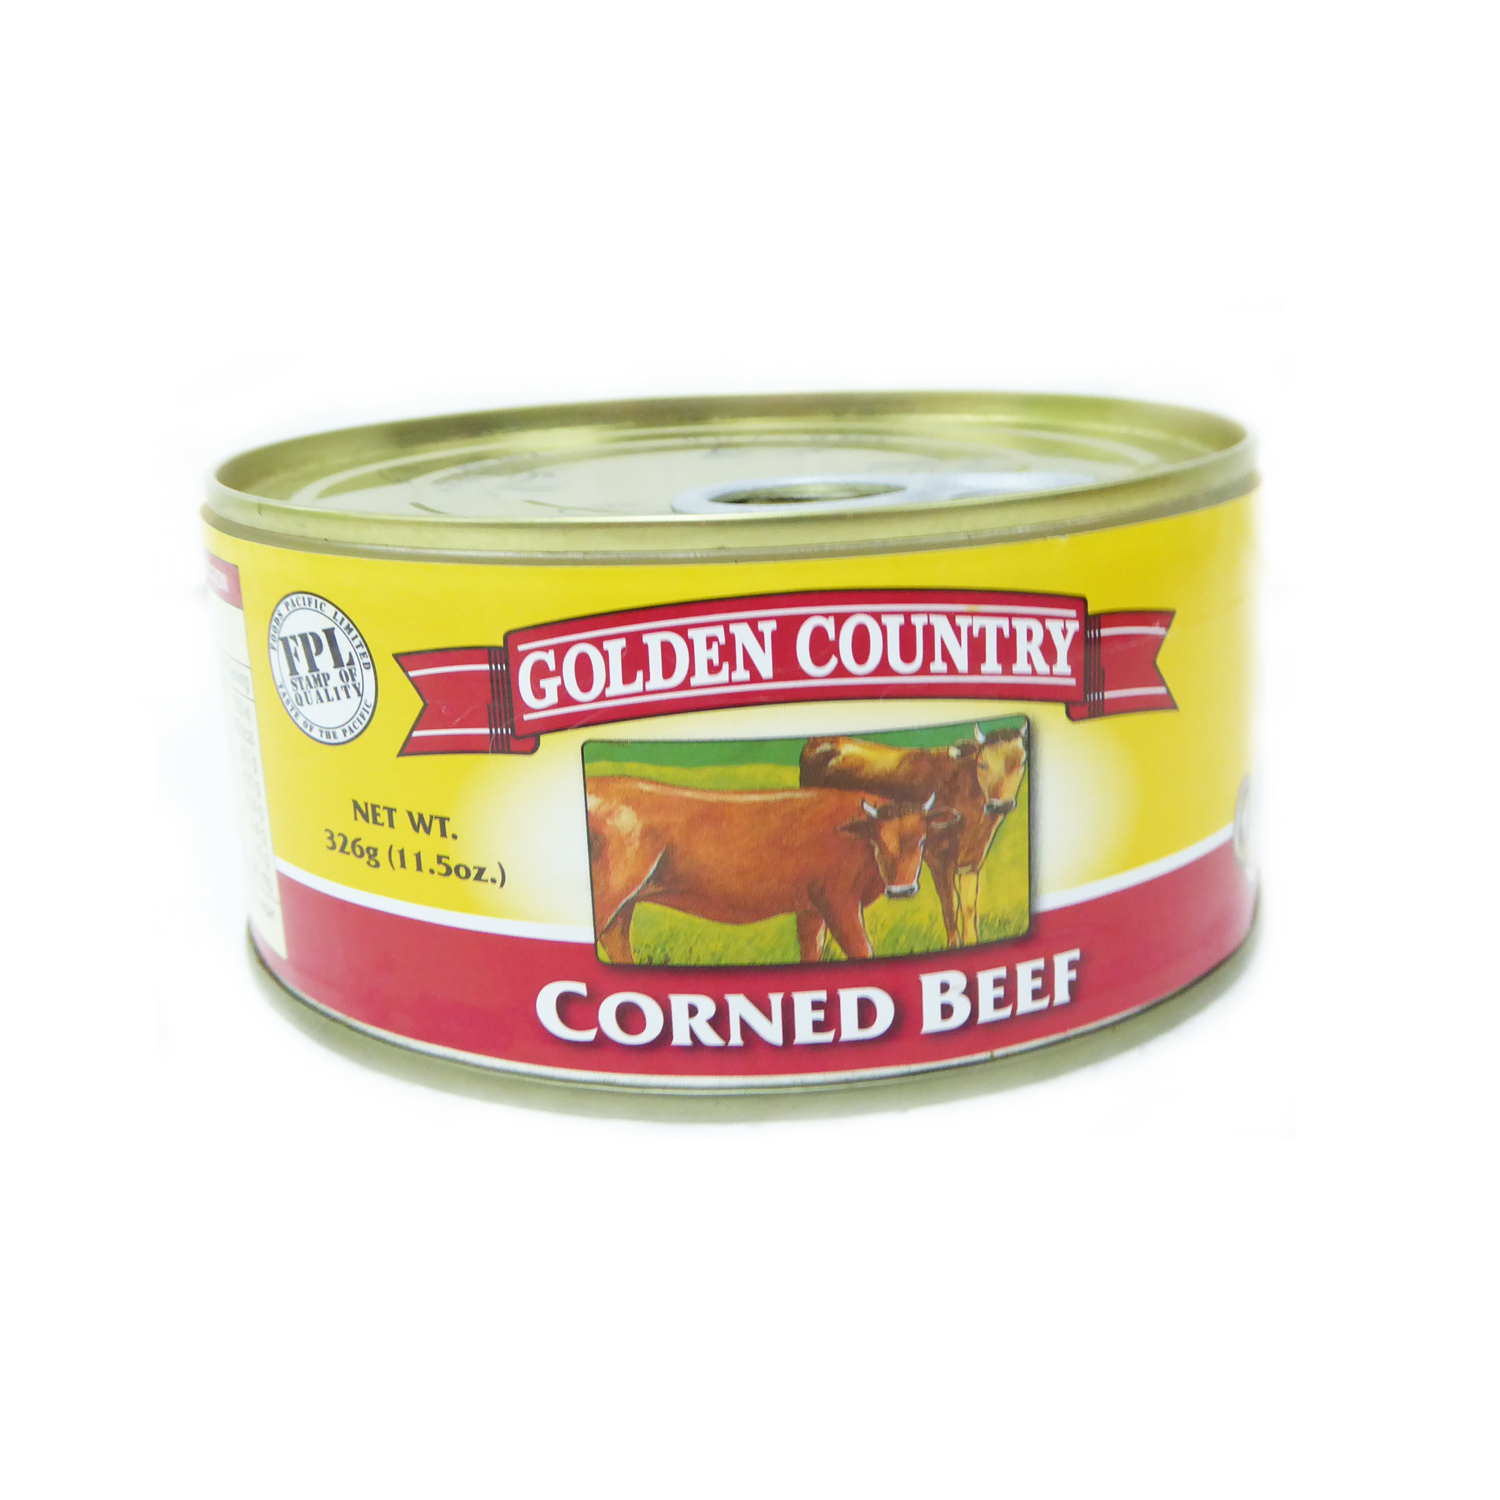 Golden Country Corned Beef